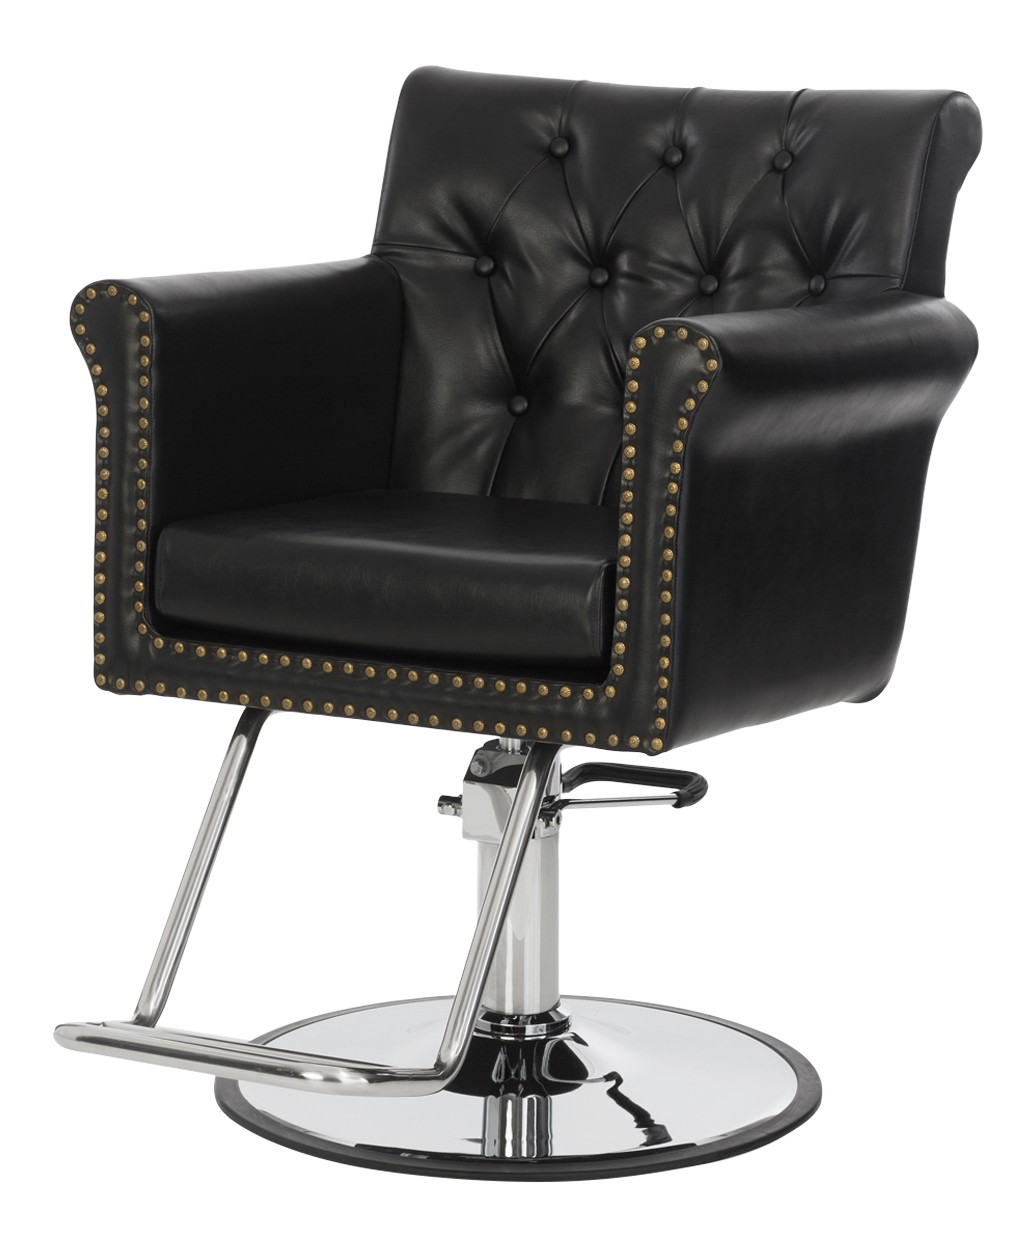 Black salon chairs - Chelsea Styling Chair